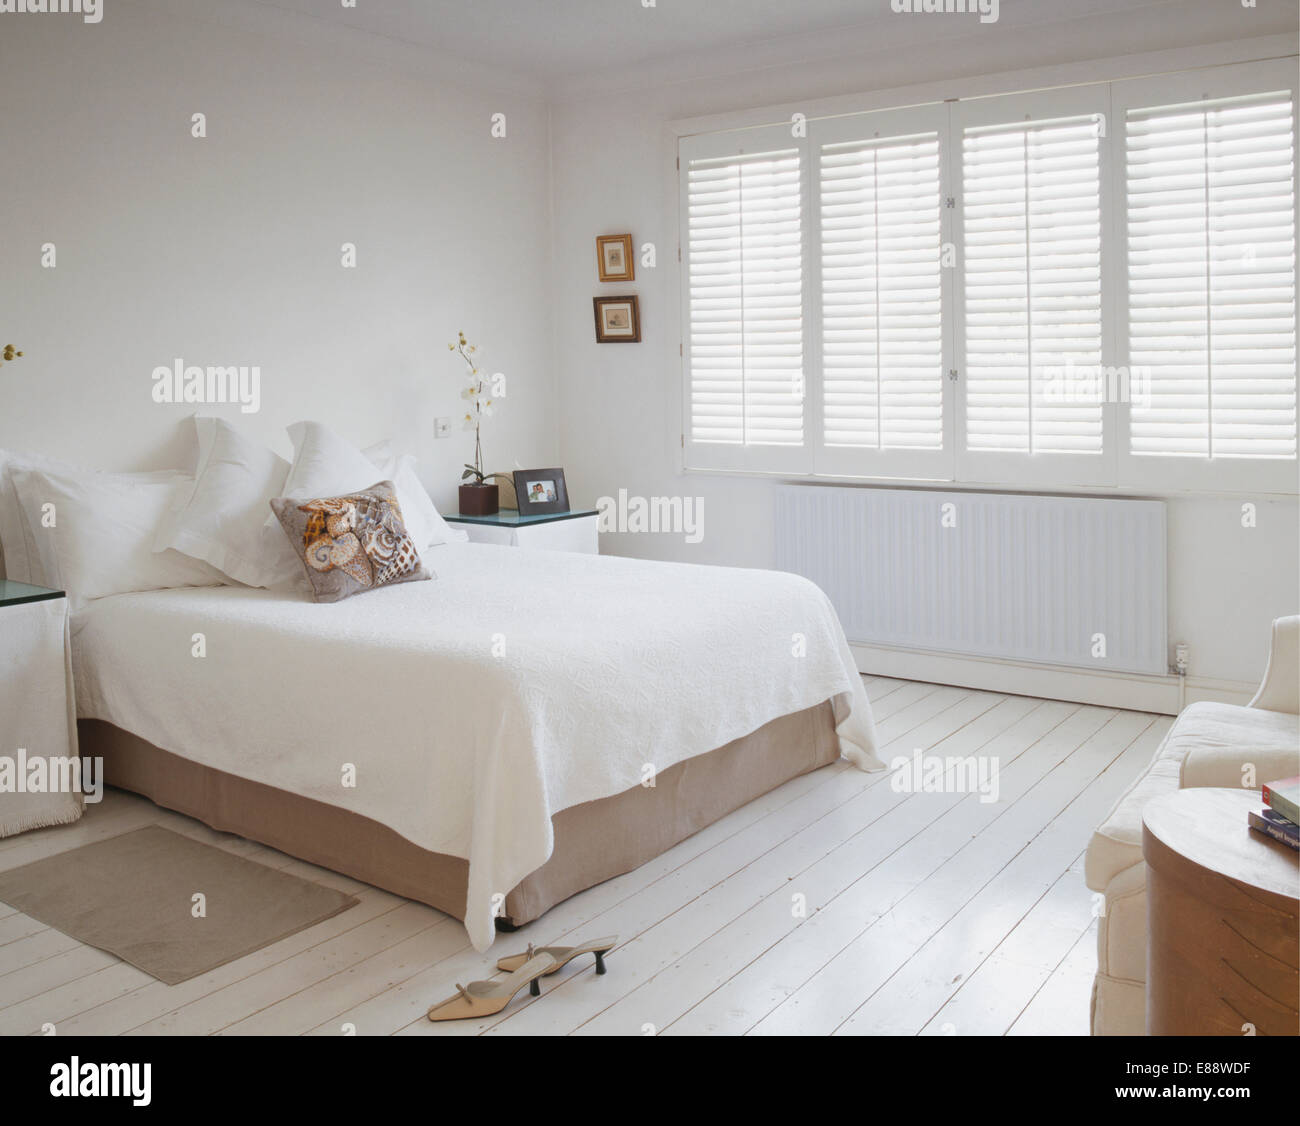 White Bedcover On Bed In White Bedroom With Plantation Shutters And White  Painted Wooden Flooring